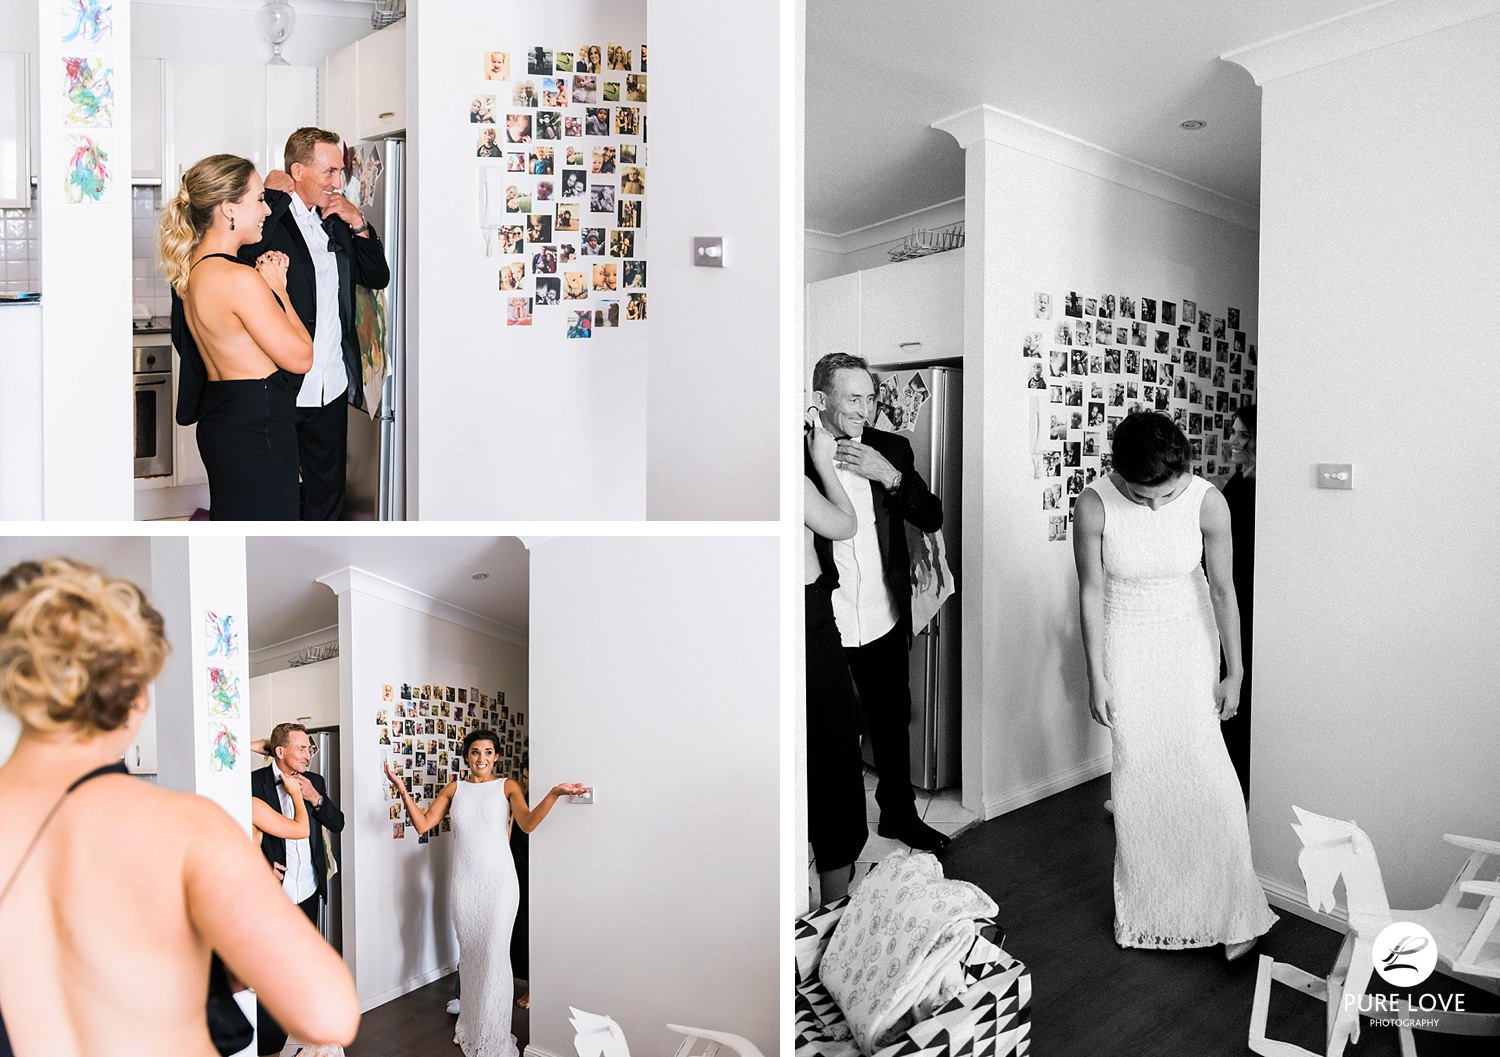 Bride is showing her dress for the first time. Great reaction from bridesmaids and family